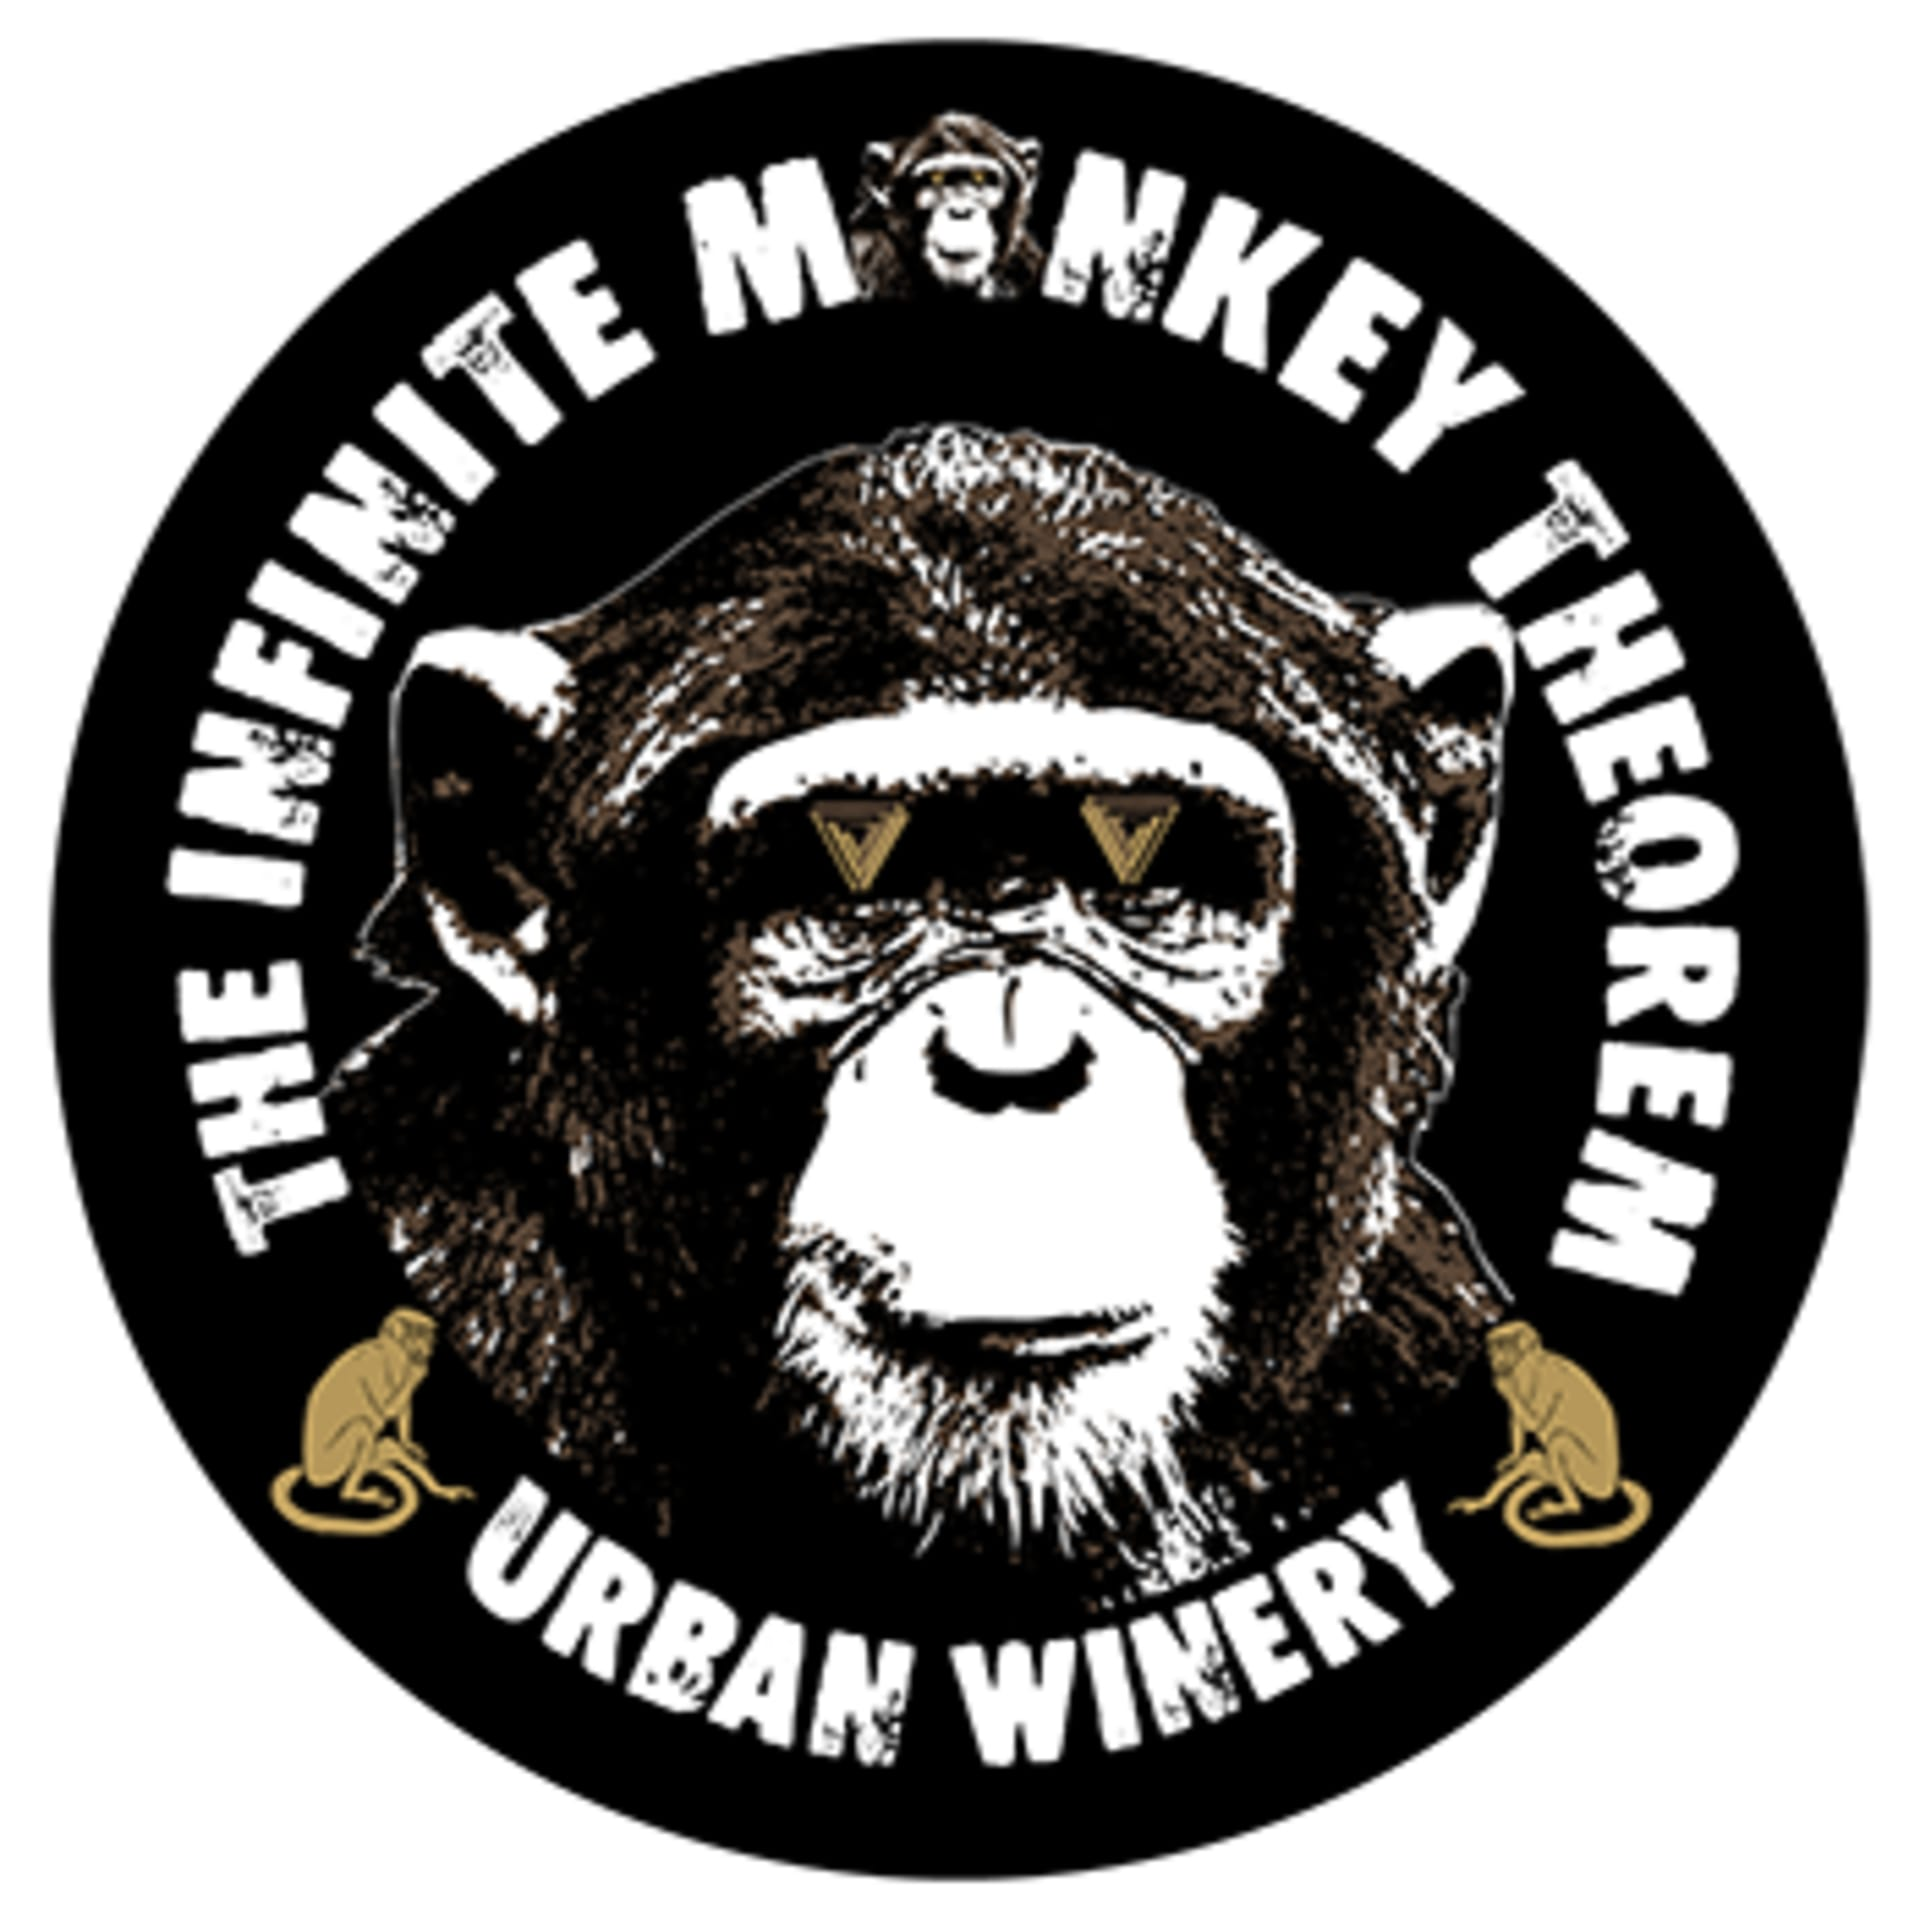 Infinite Monkey Theorem, Petit Verdot